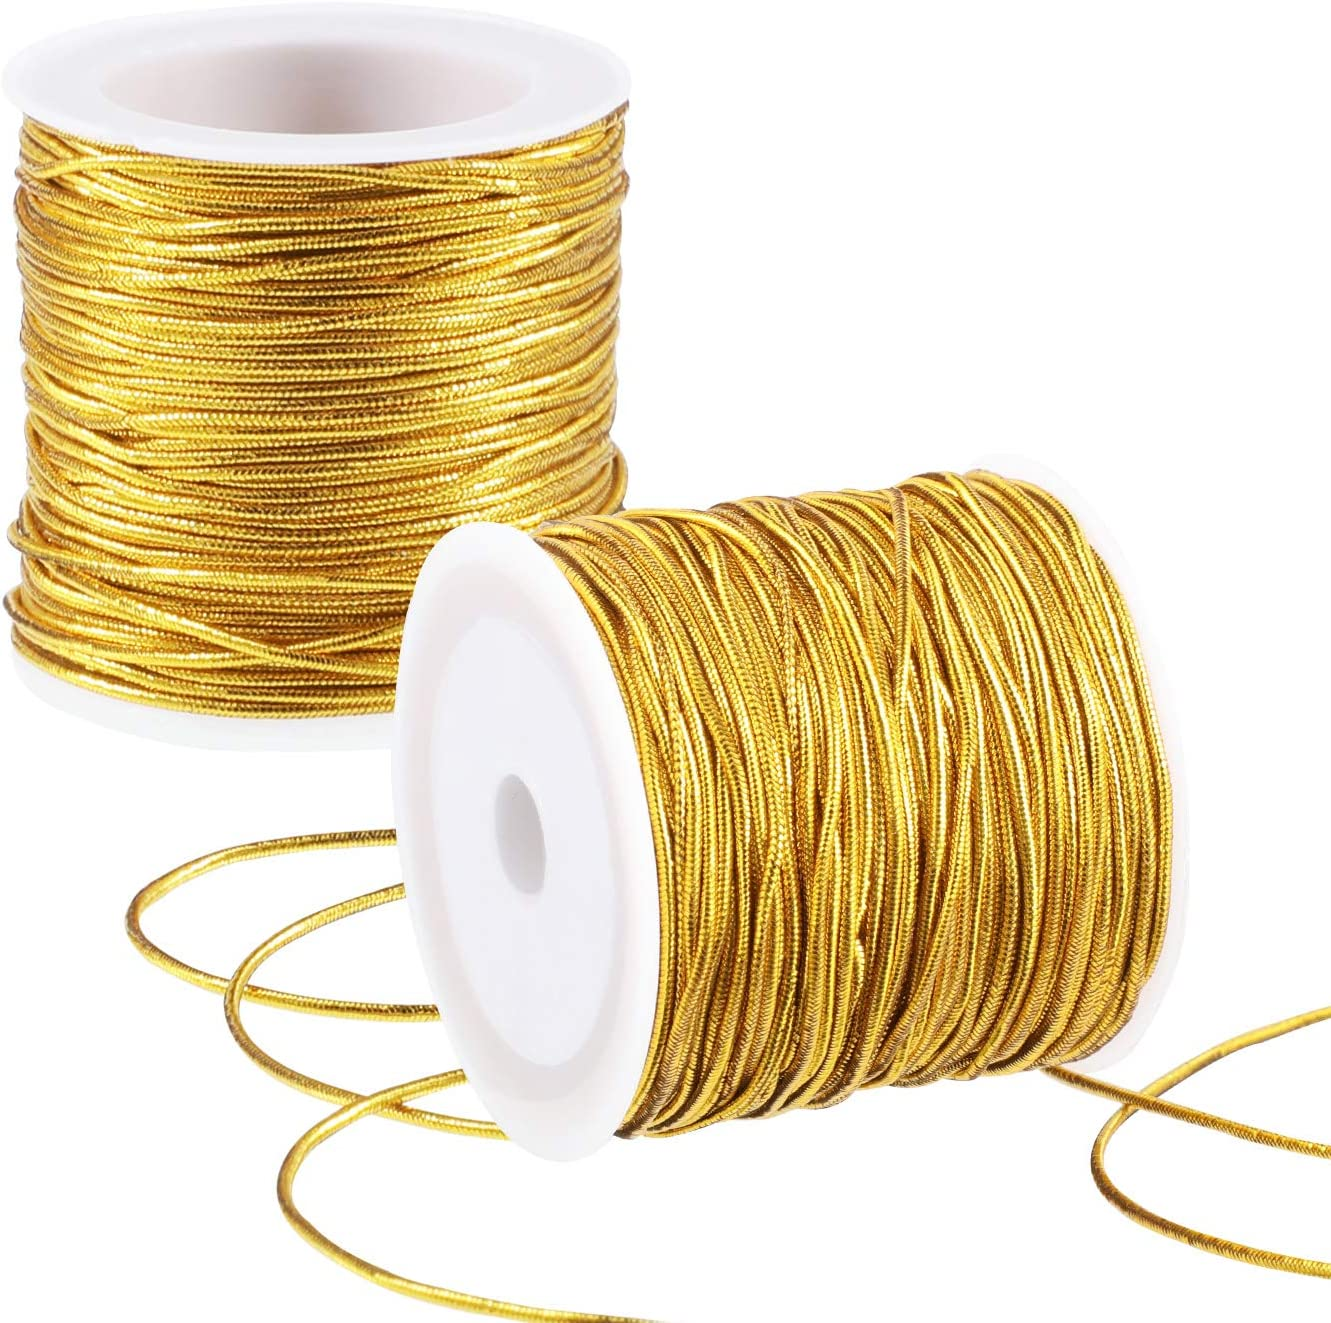 2 Rolls Metallic Elastic Cords Stretch Cord Ribbon Metallic Tinsel Cord Rope for Craft Making Gift Wrapping Gold 1 mm 55 Yards